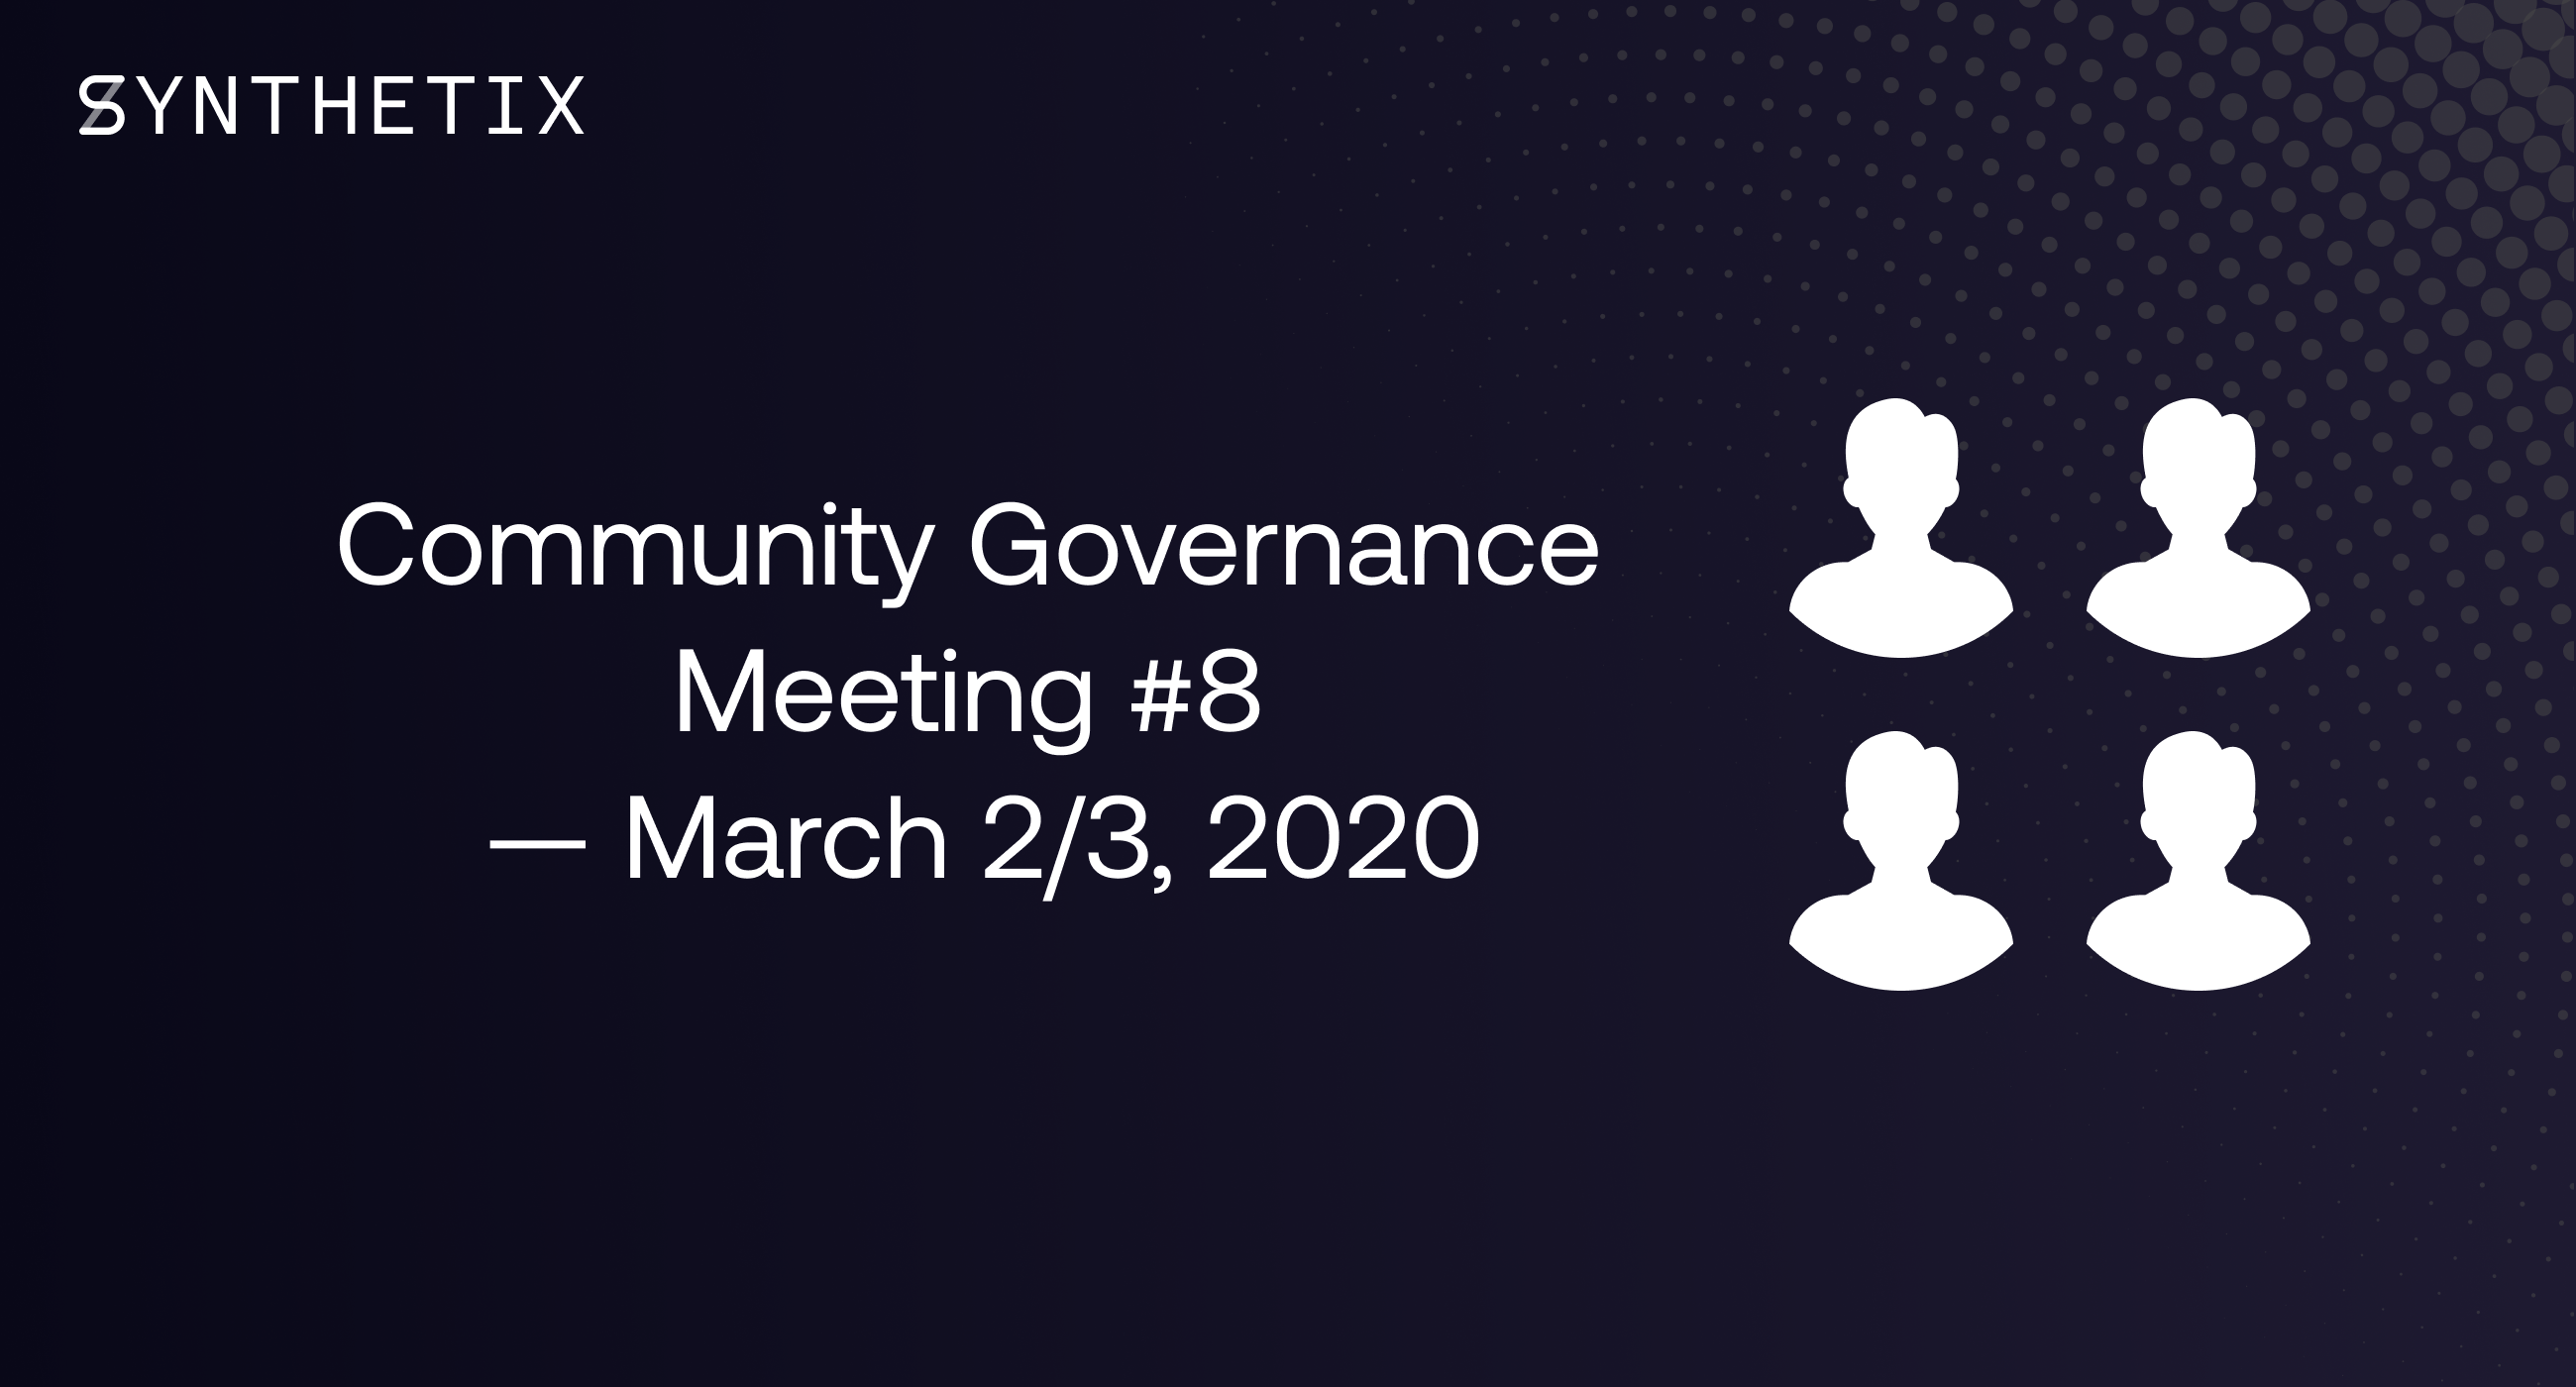 Join us on March 2/3 for the next community governance call!